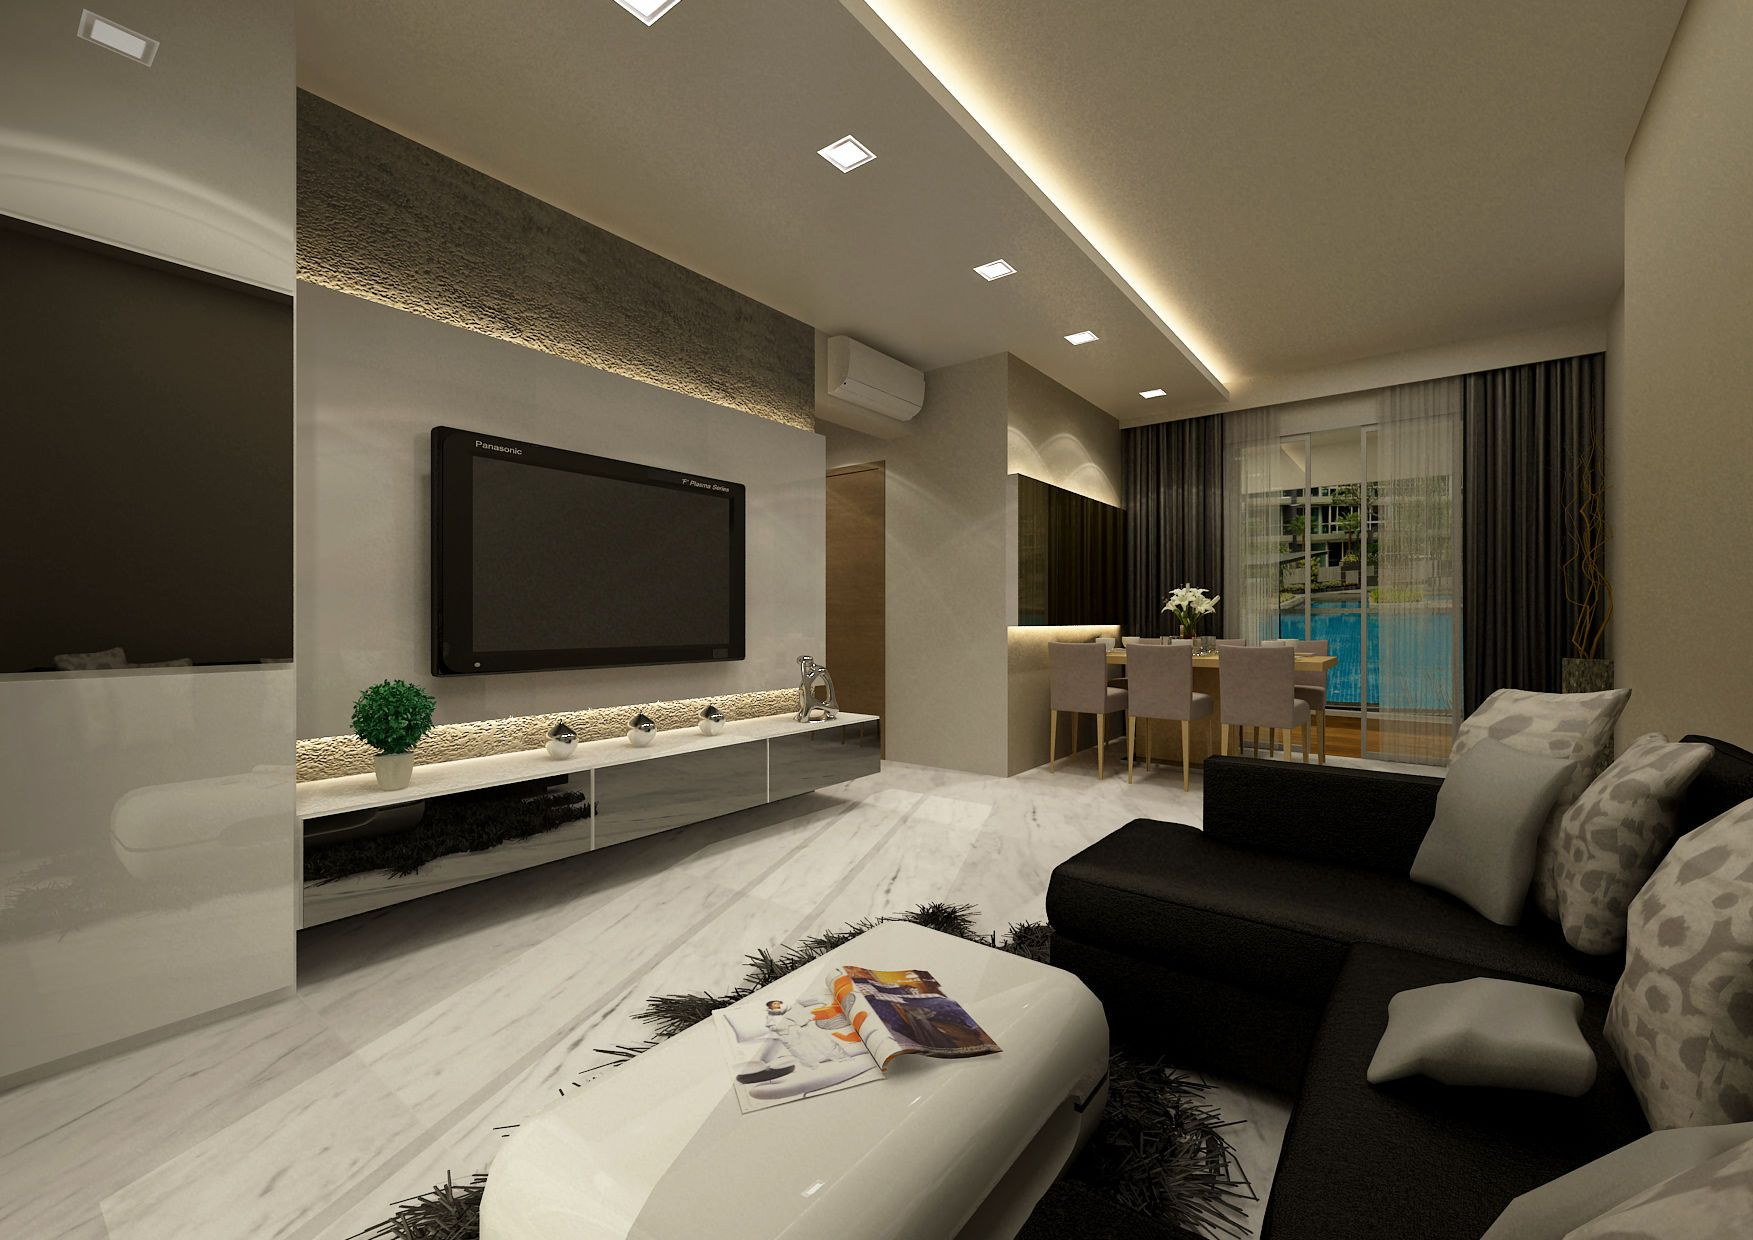 Home Designs Living Room Glamorous Graphic Executive Condominium Interior Design  Renovation Design Inspiration